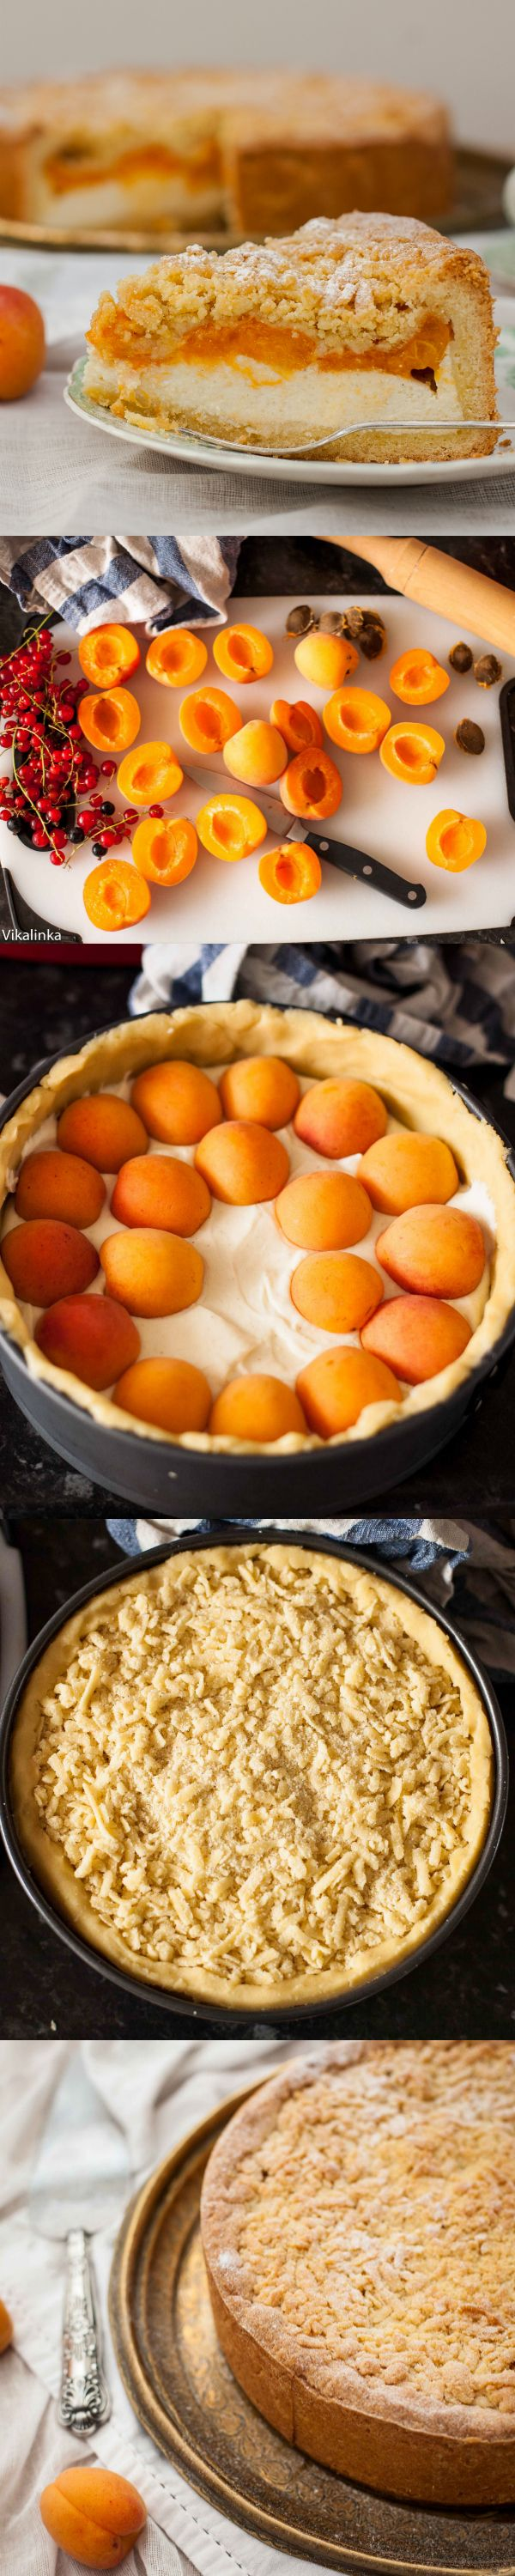 Crumb Apricot Cheesecake - this looks amazing!